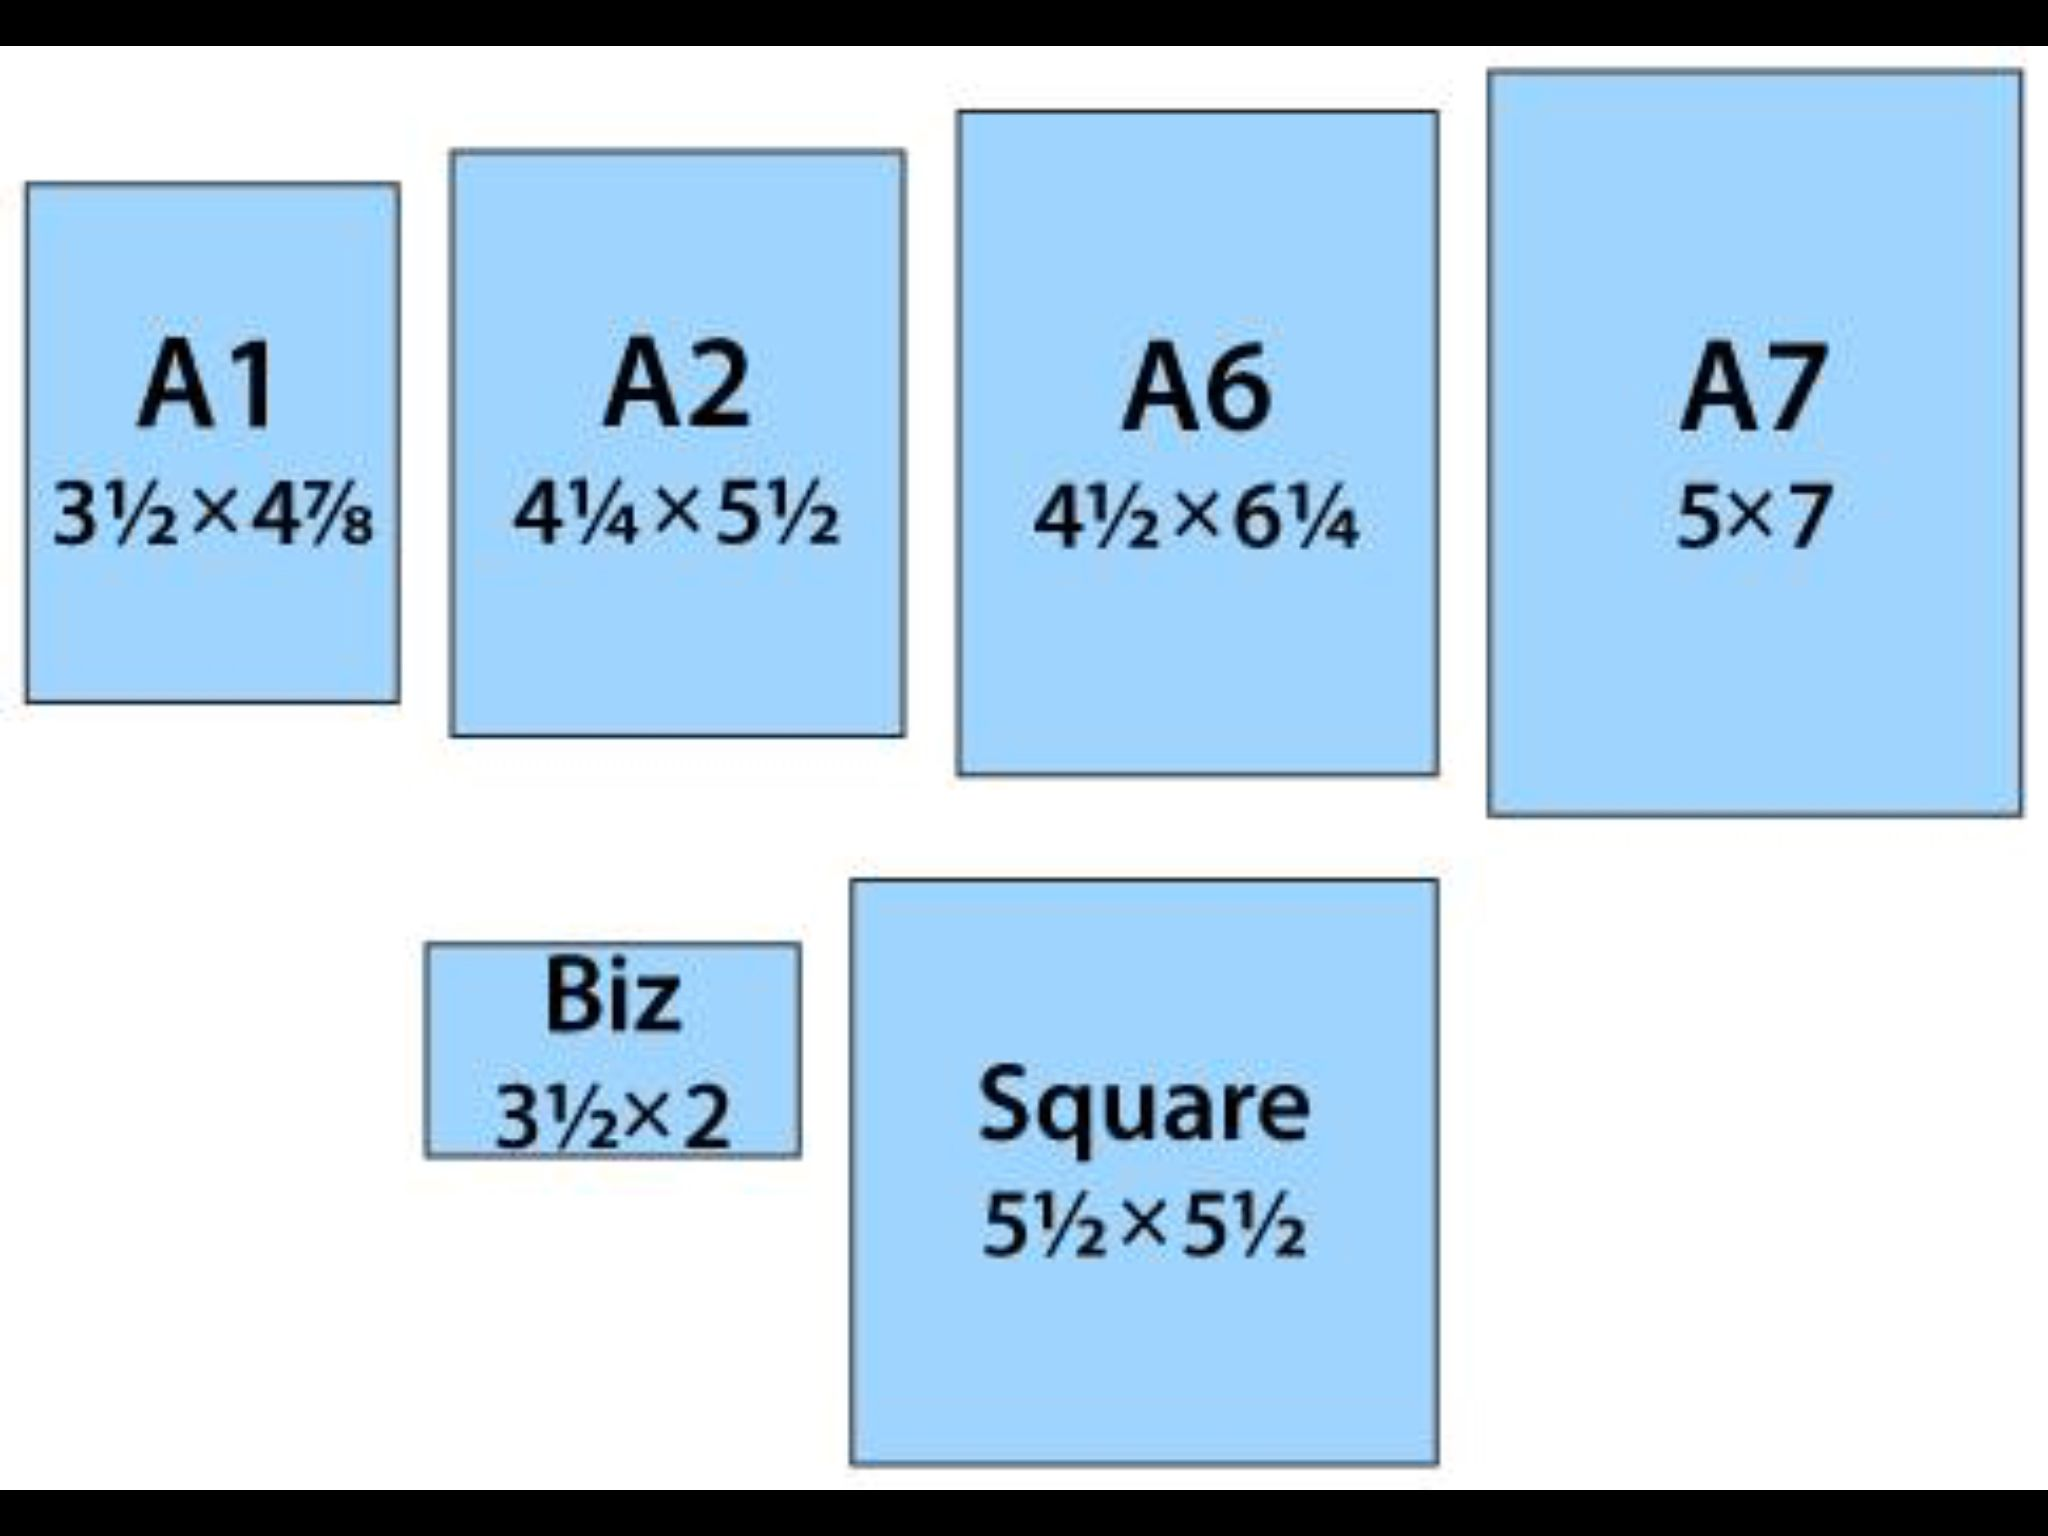 Standard Business Card Size Chart Gallery - Card Design And Card ...